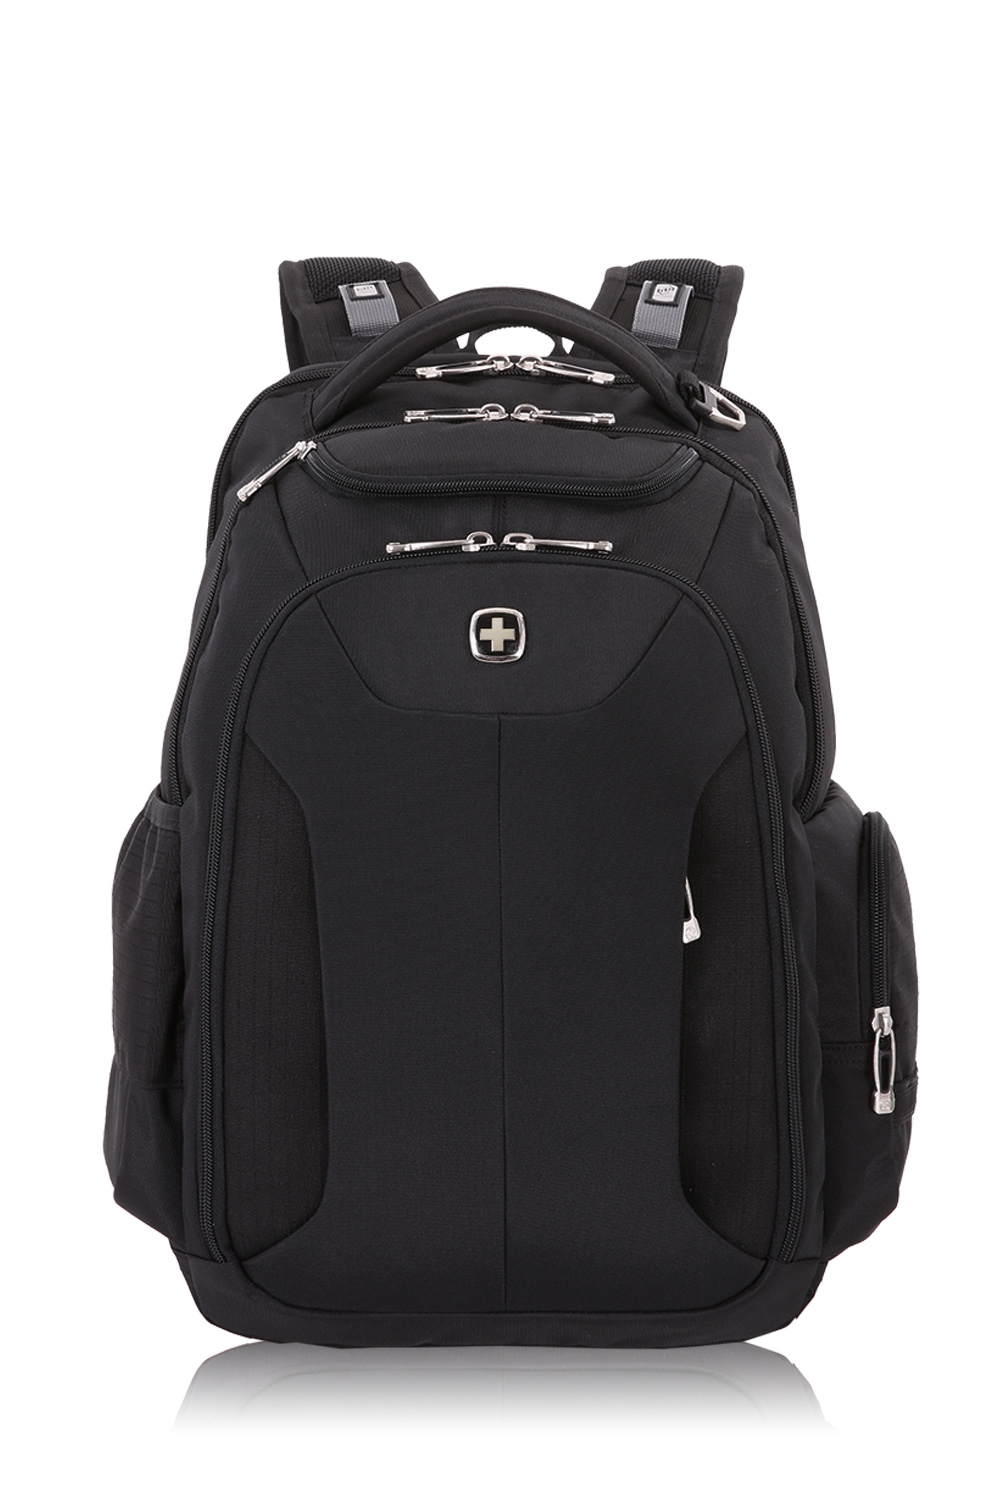 SWISSGEAR 5527 Scansmart Backpack - Black Cod